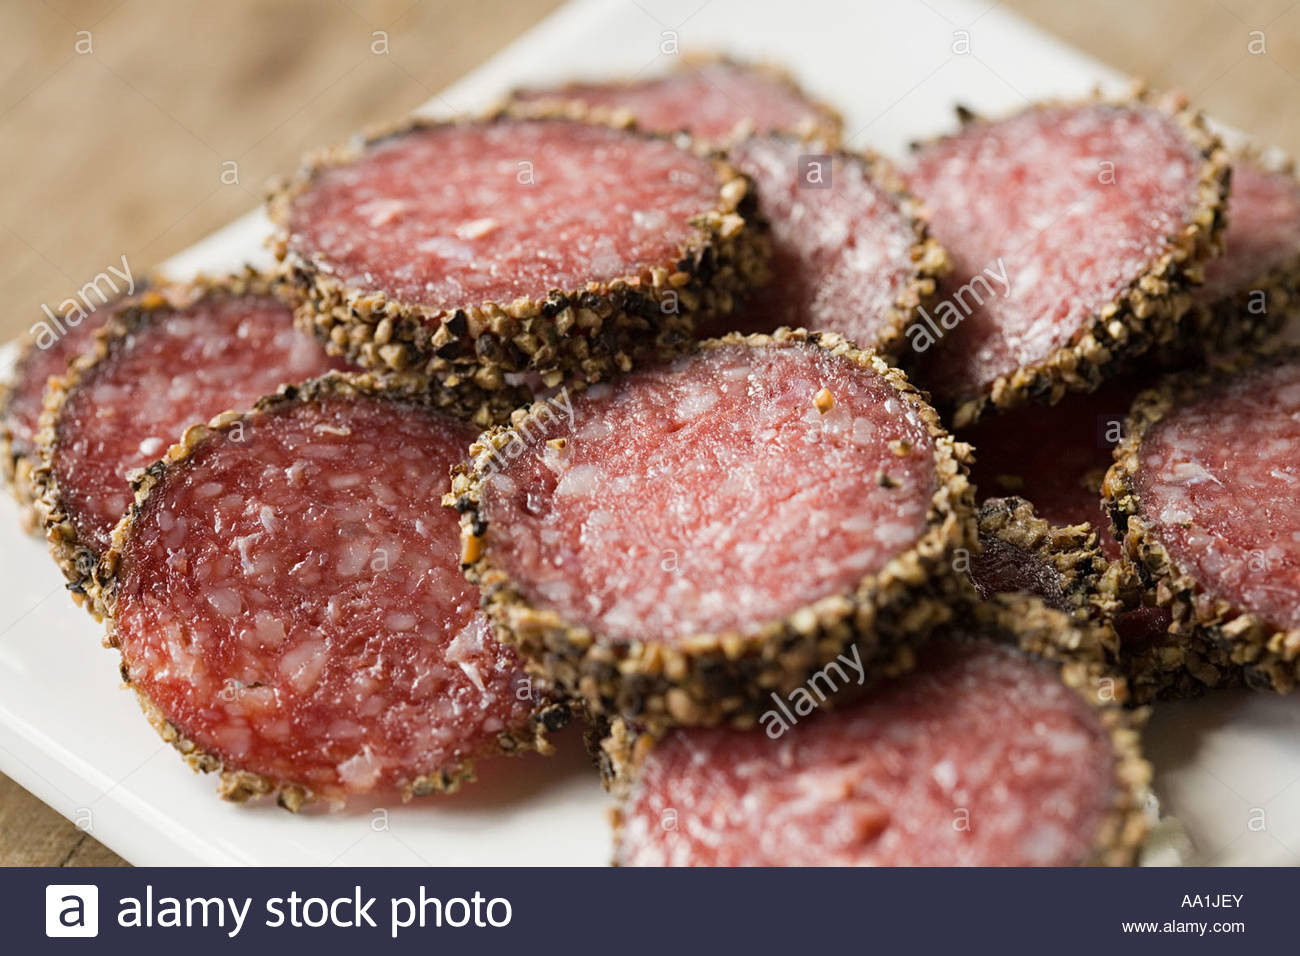 Slices of pepperoni sausage - Stock Image